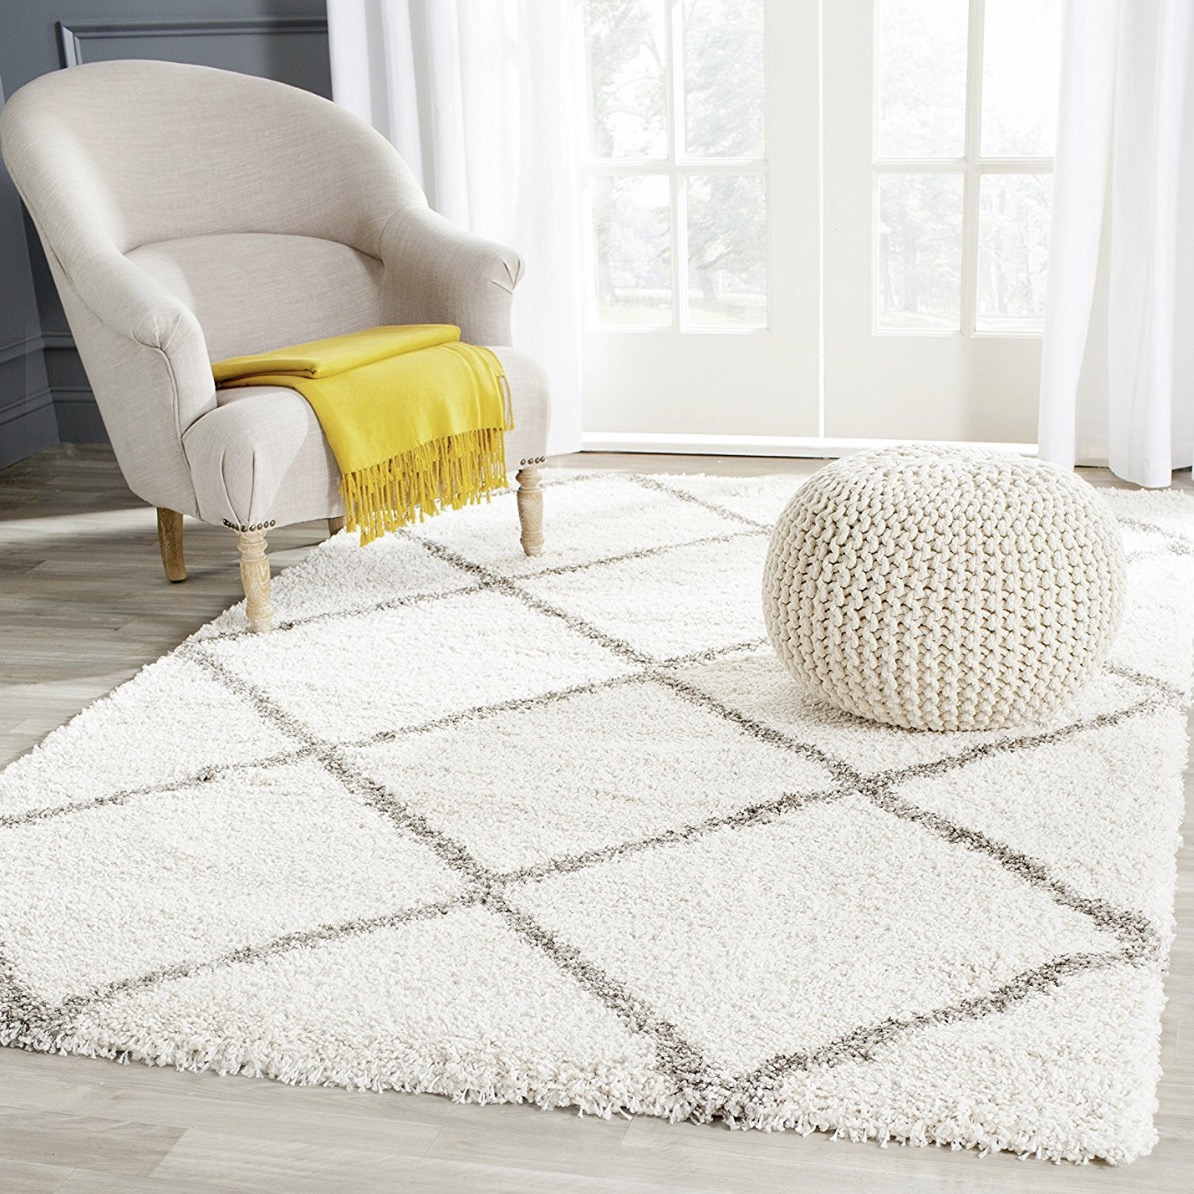 Ivory and grey shag rug with diamonds